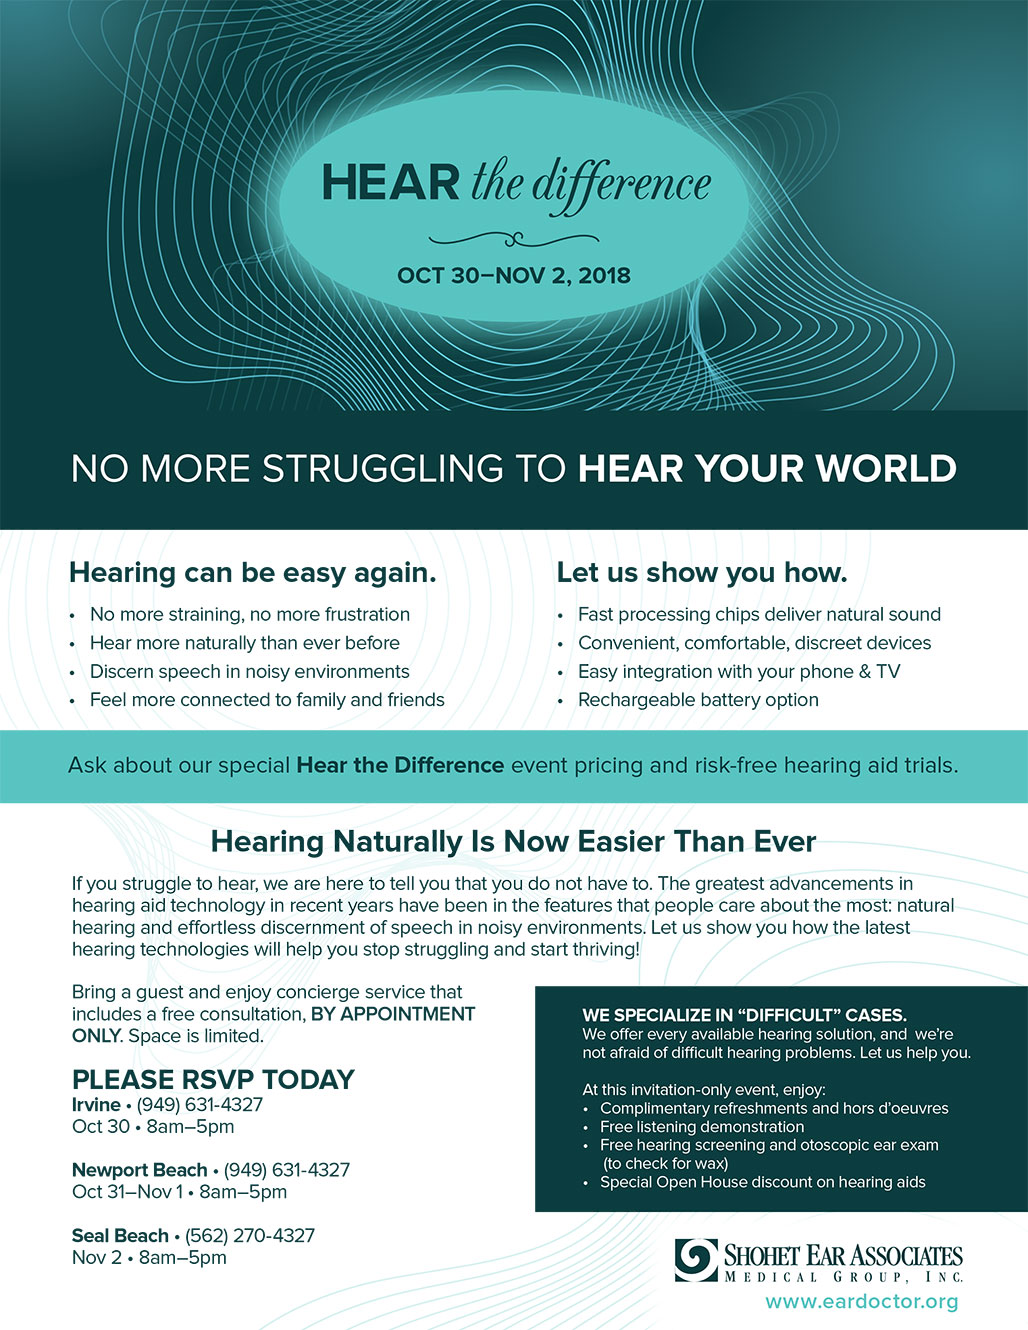 SEA Hearing Event 2018